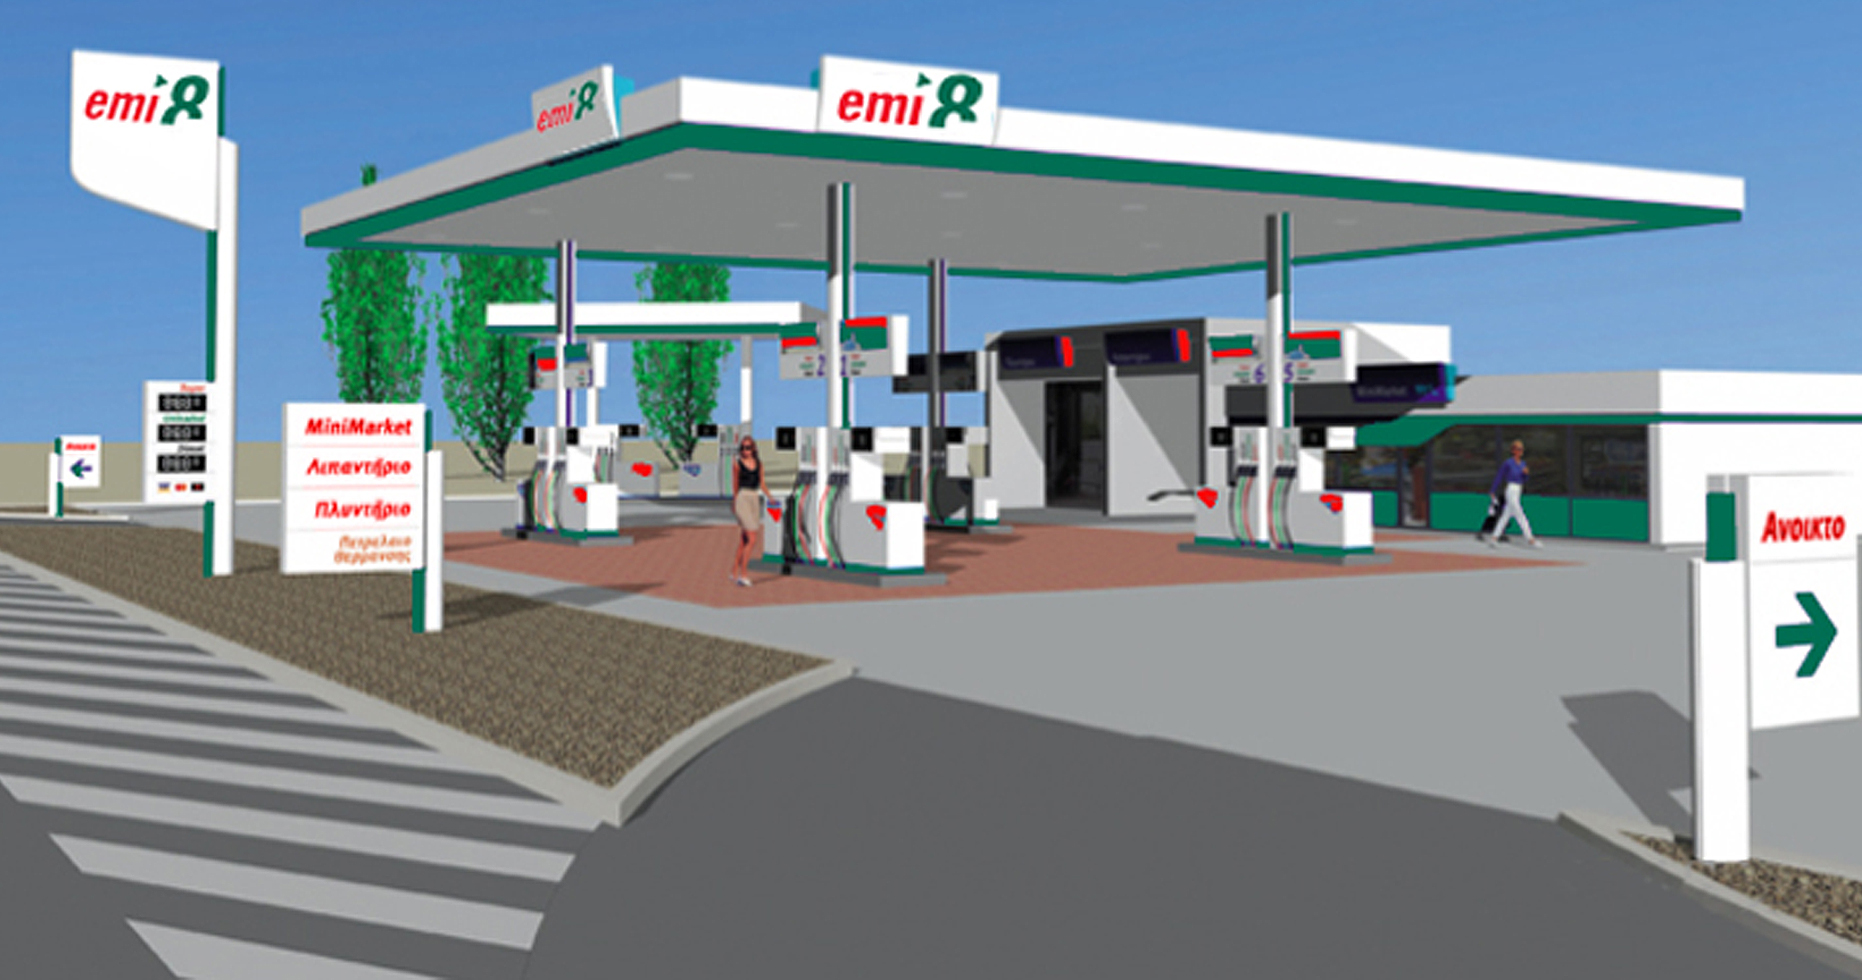 Petrol Station forecourt with red and dark green logo for EMIR8 petroleum